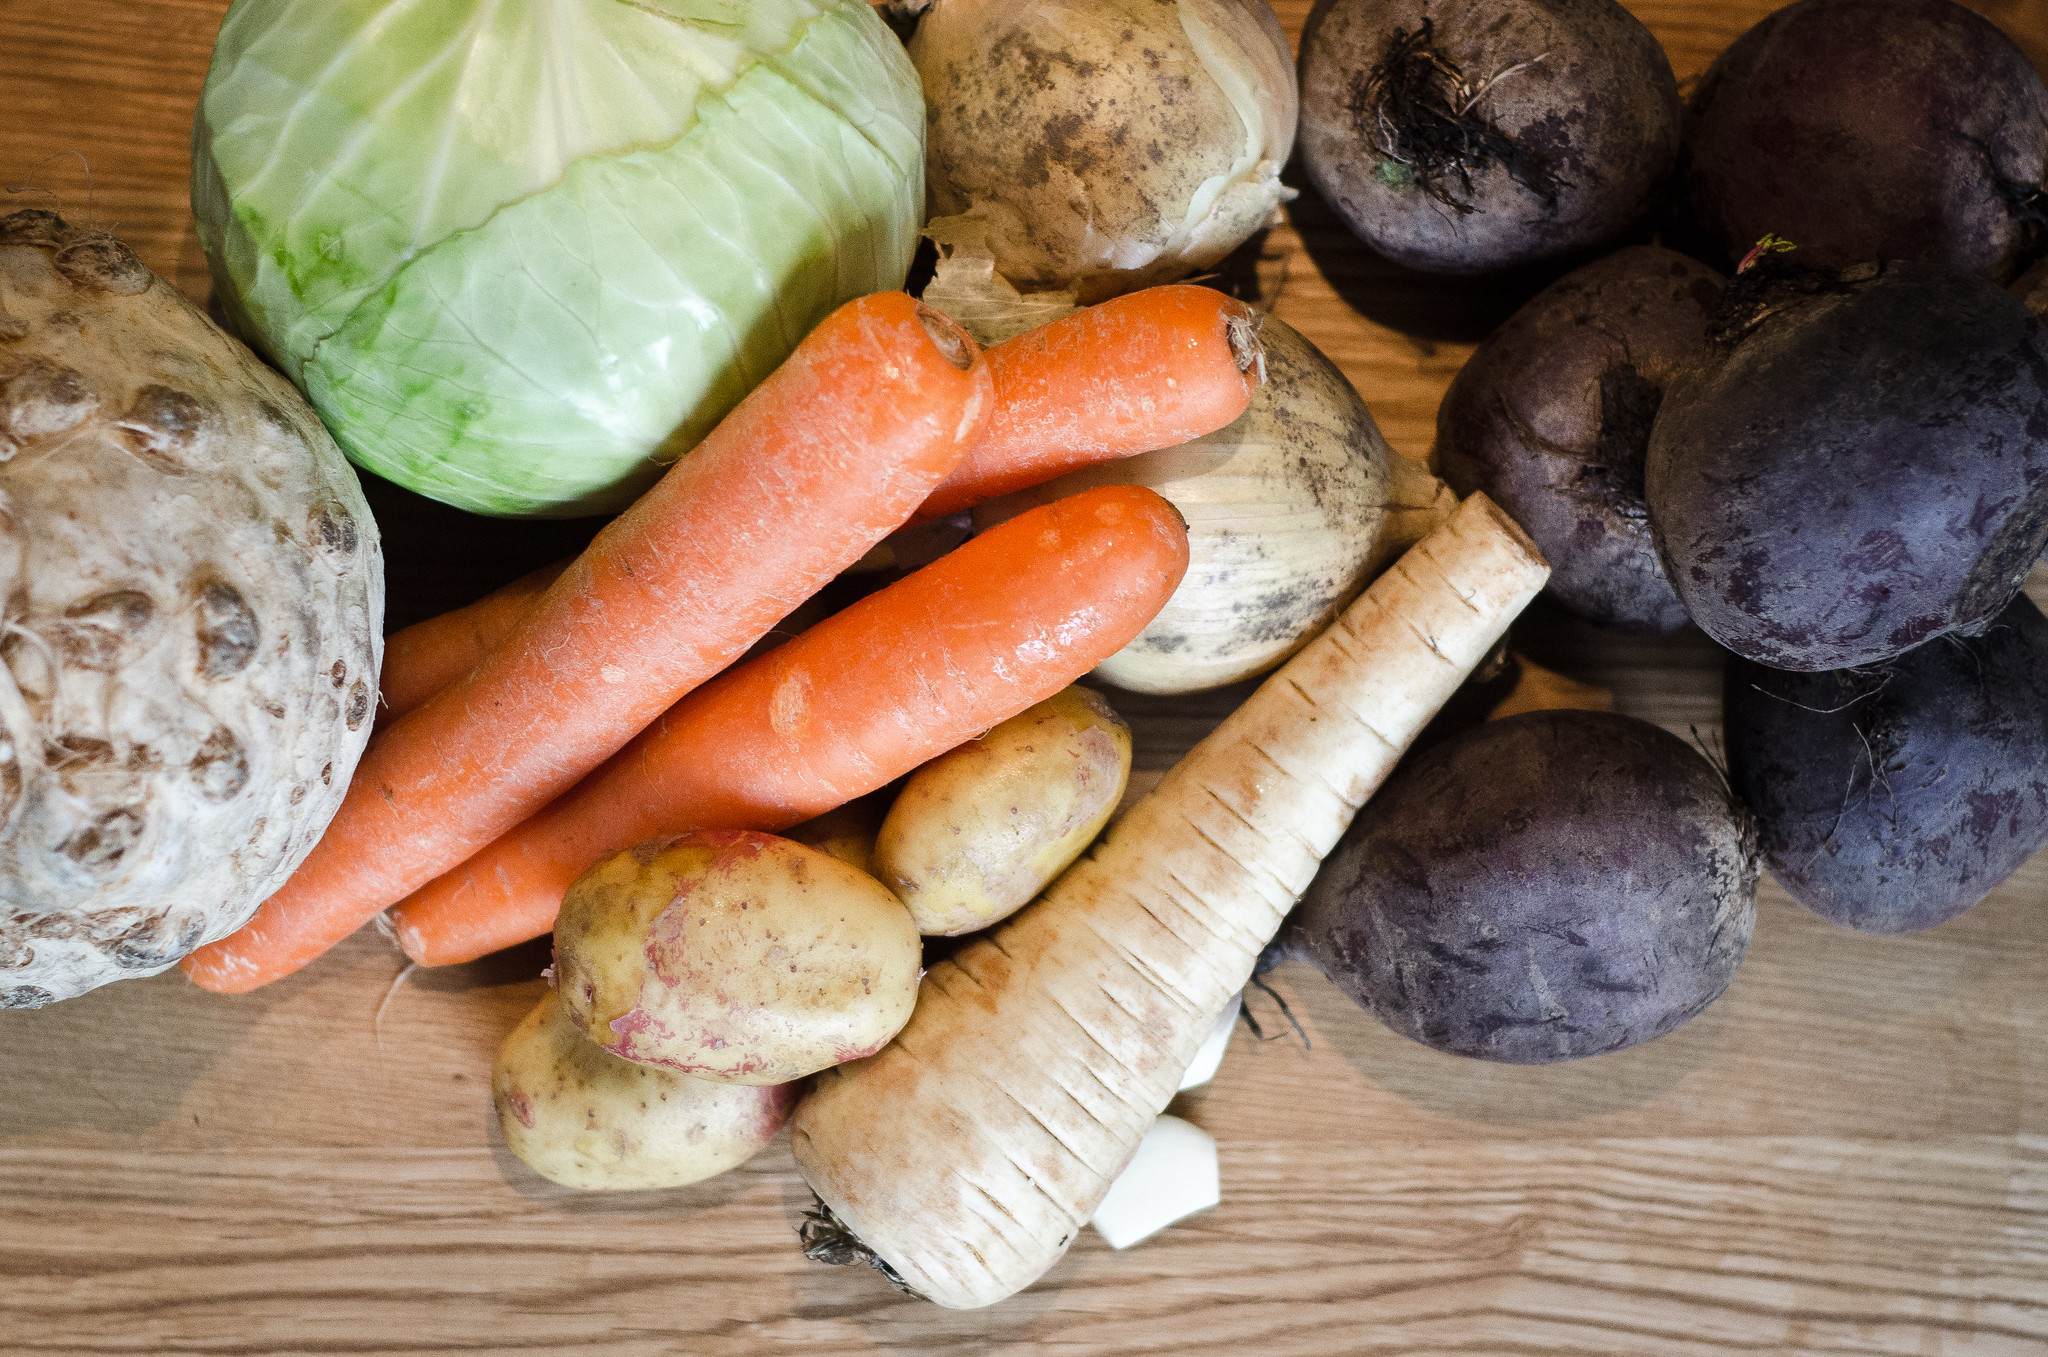 Potatoes and Root Vegetables